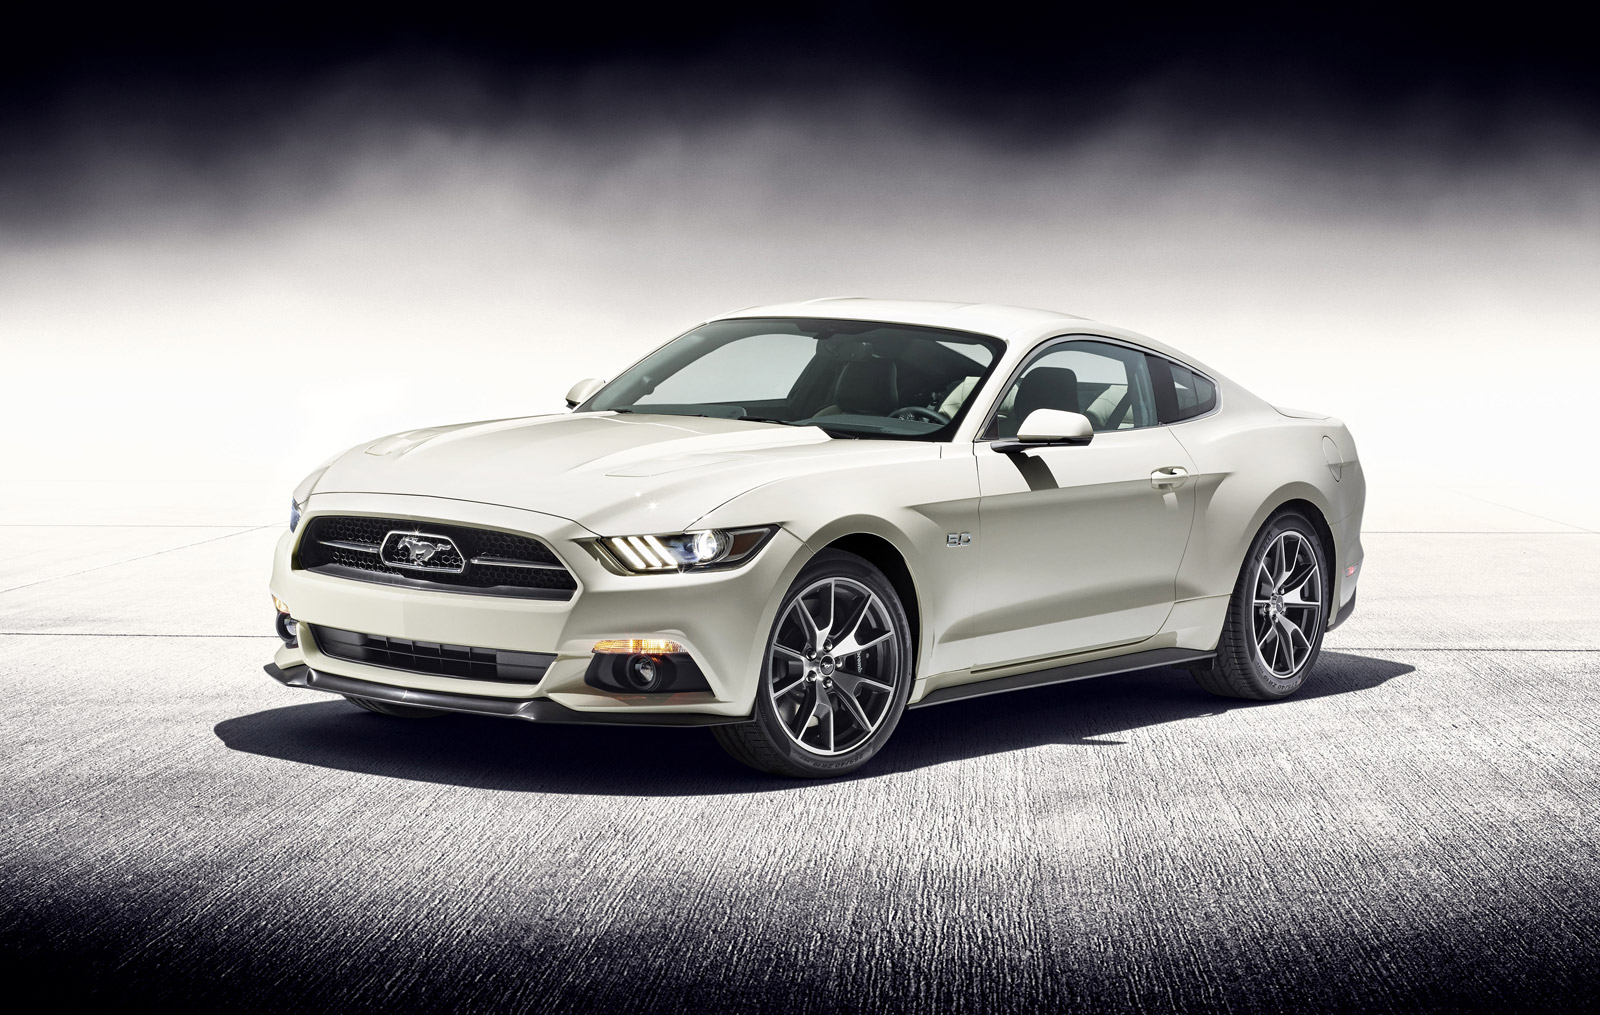 2015 Ford Mustang: Readers\' Pick For Best Car To Buy